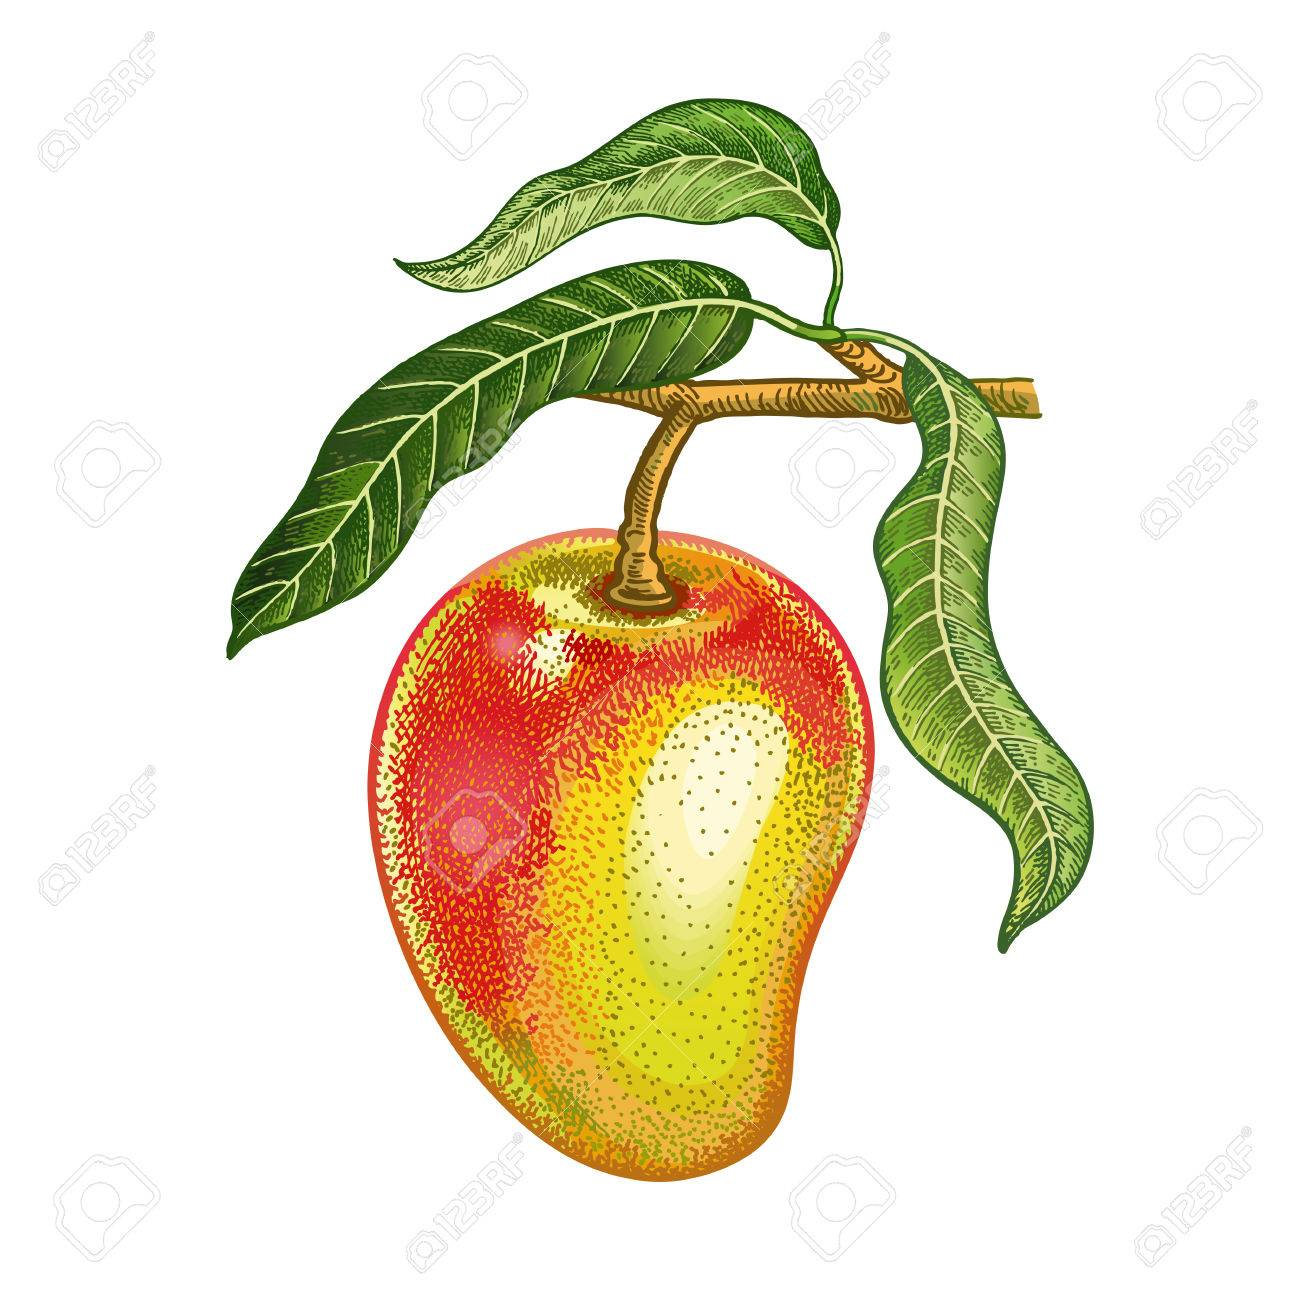 Mango Realistic Hand Drawing Made With Colored Pencils Vector Royalty Free Cliparts Vectors And Stock Illustration Image 82526285